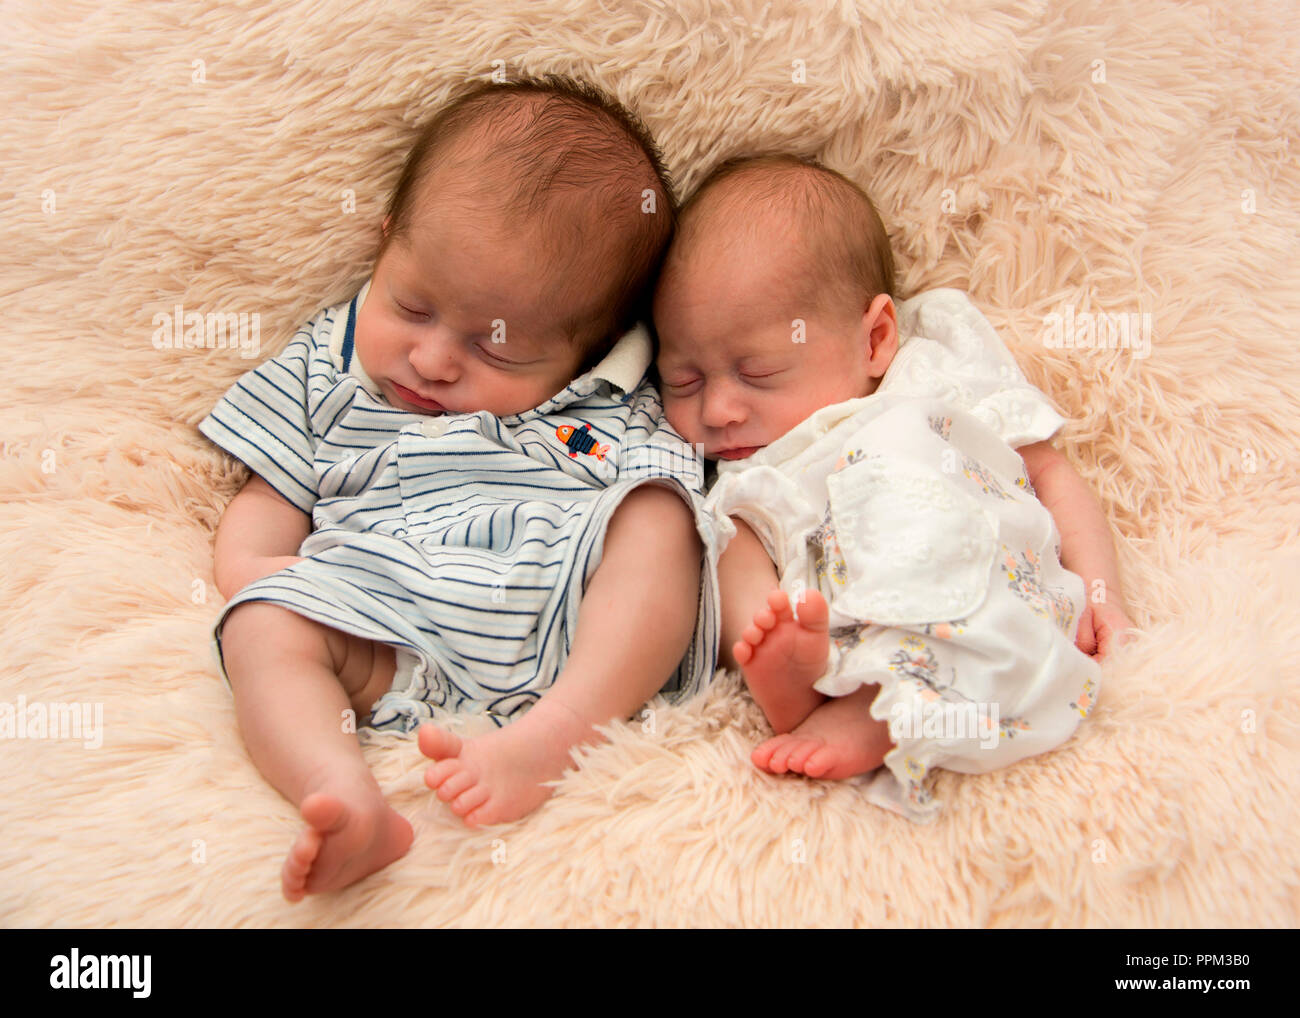 Horizontal portrait of premature twin newborn babies. Stock Photo